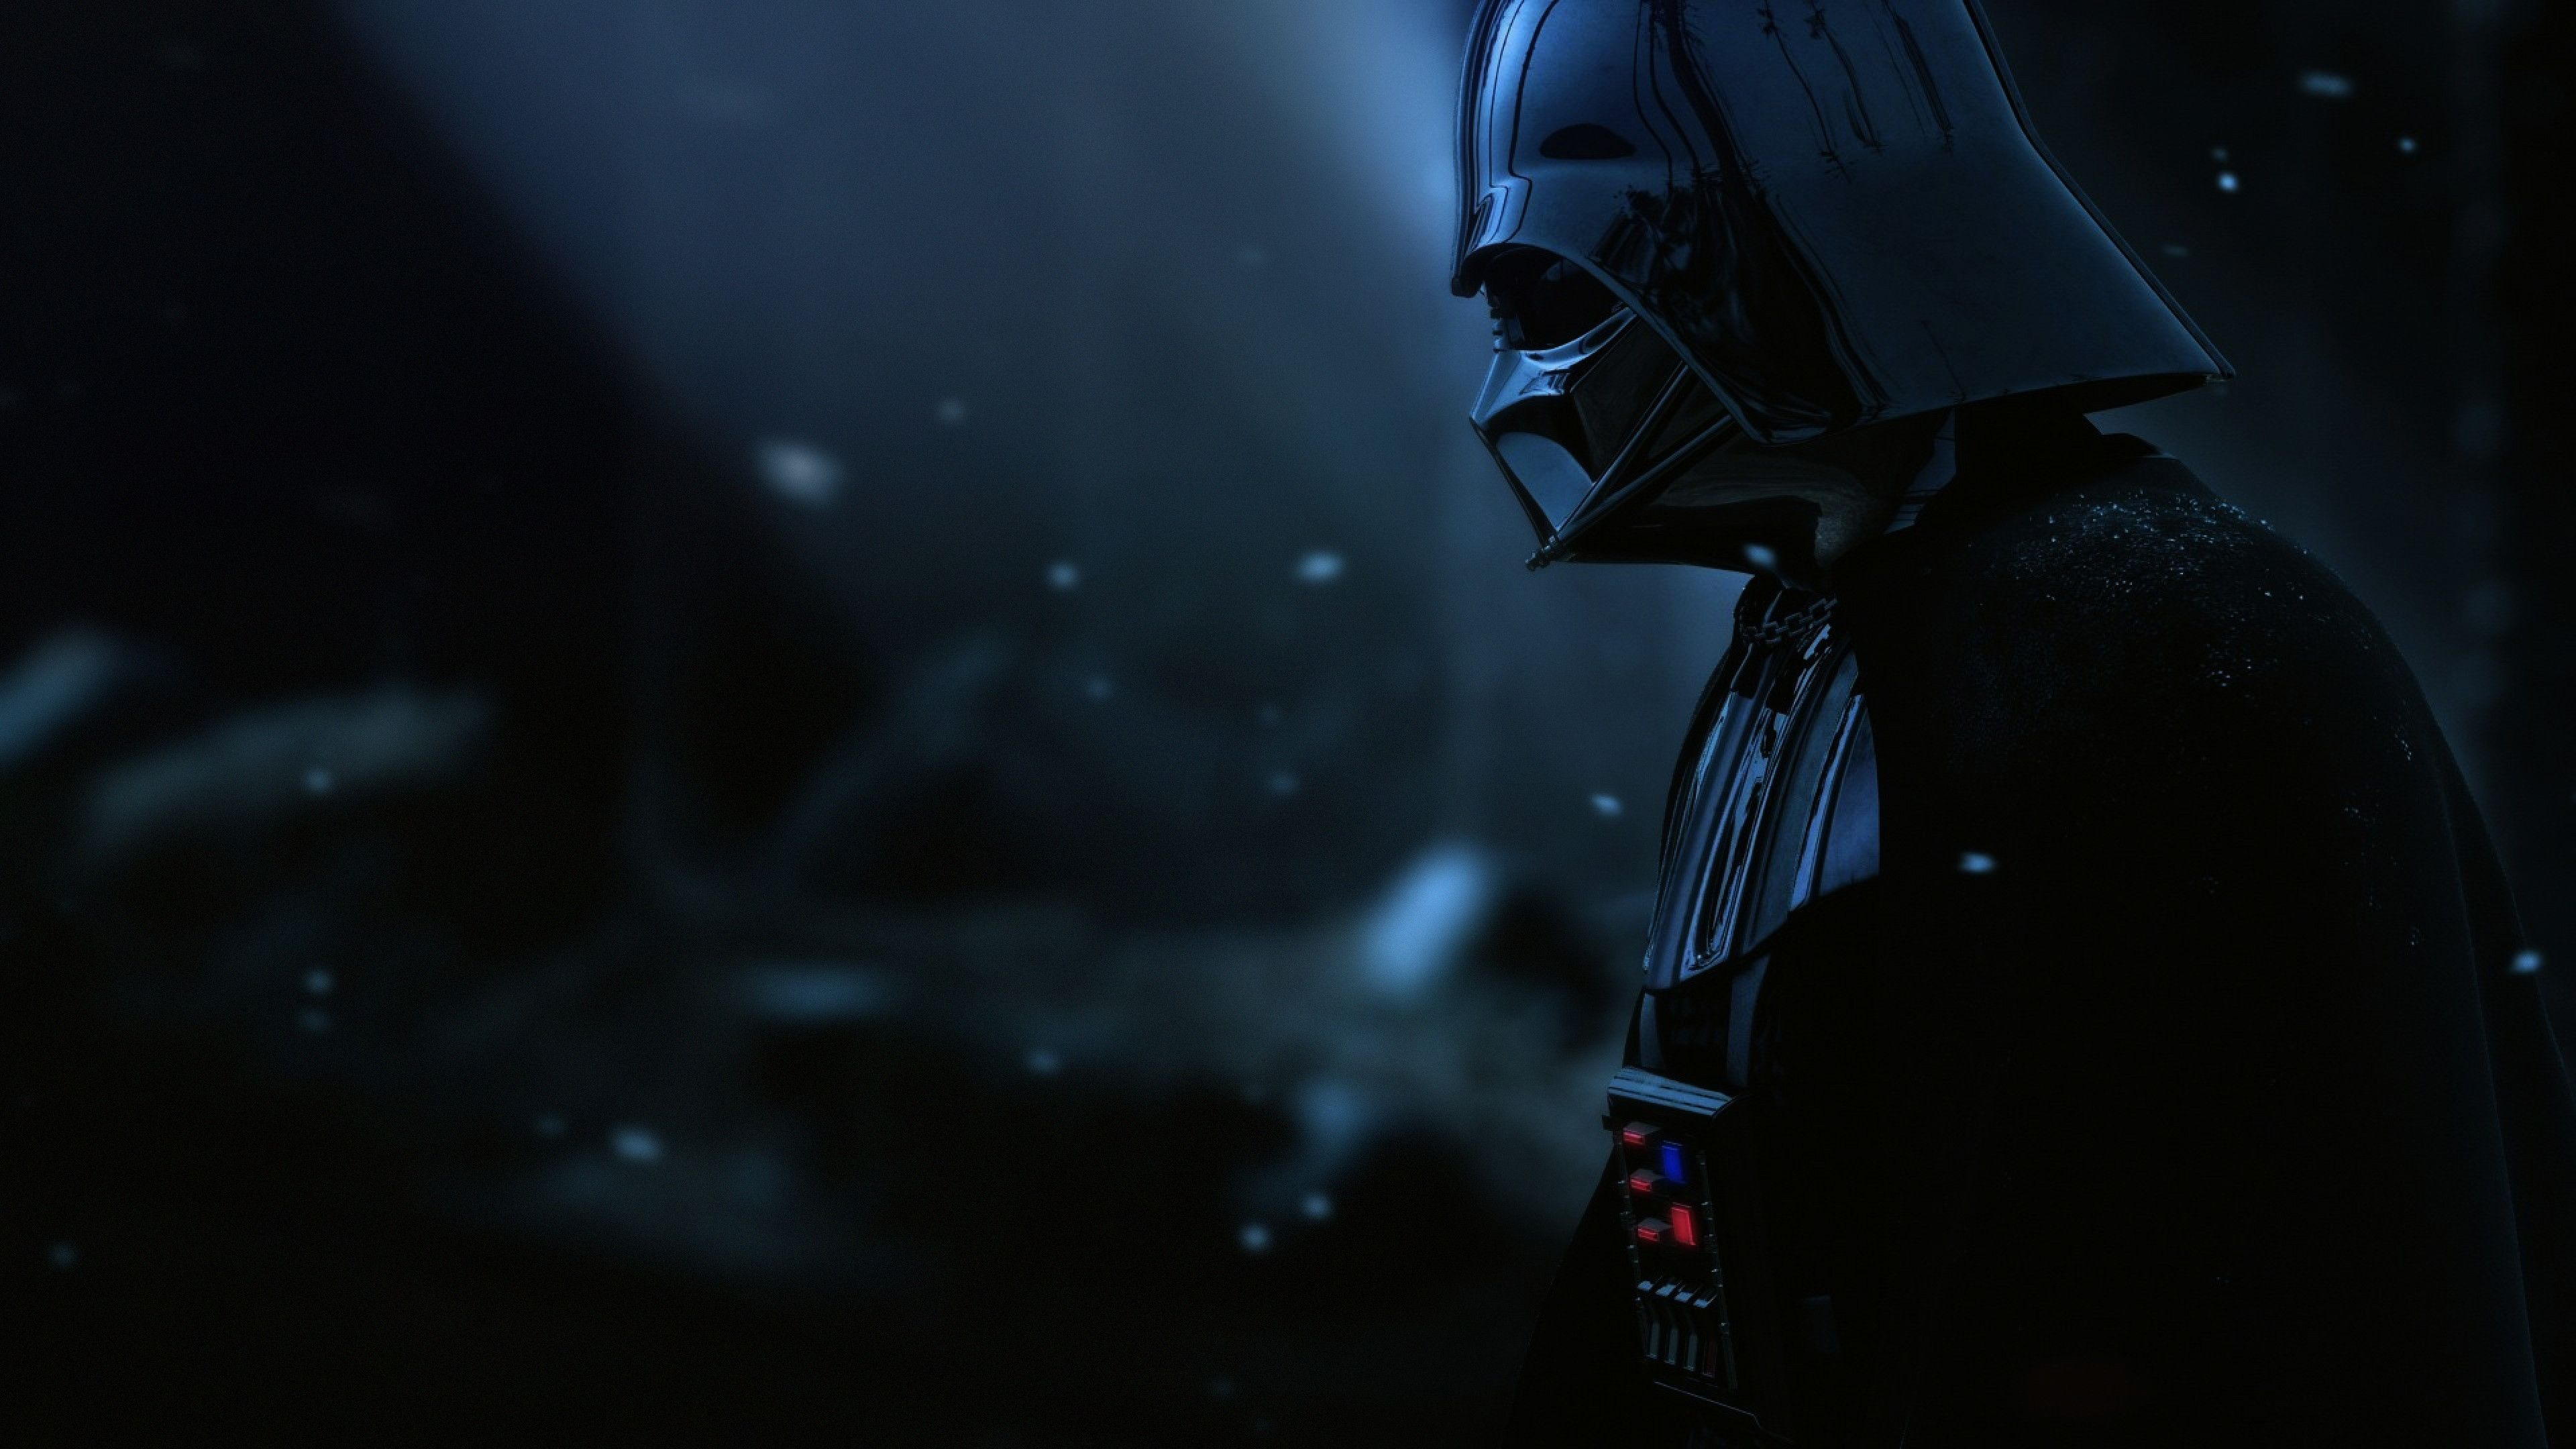 I Slightly Tweaked A 4k Wallpaper Of Darth Vader Wallpapers